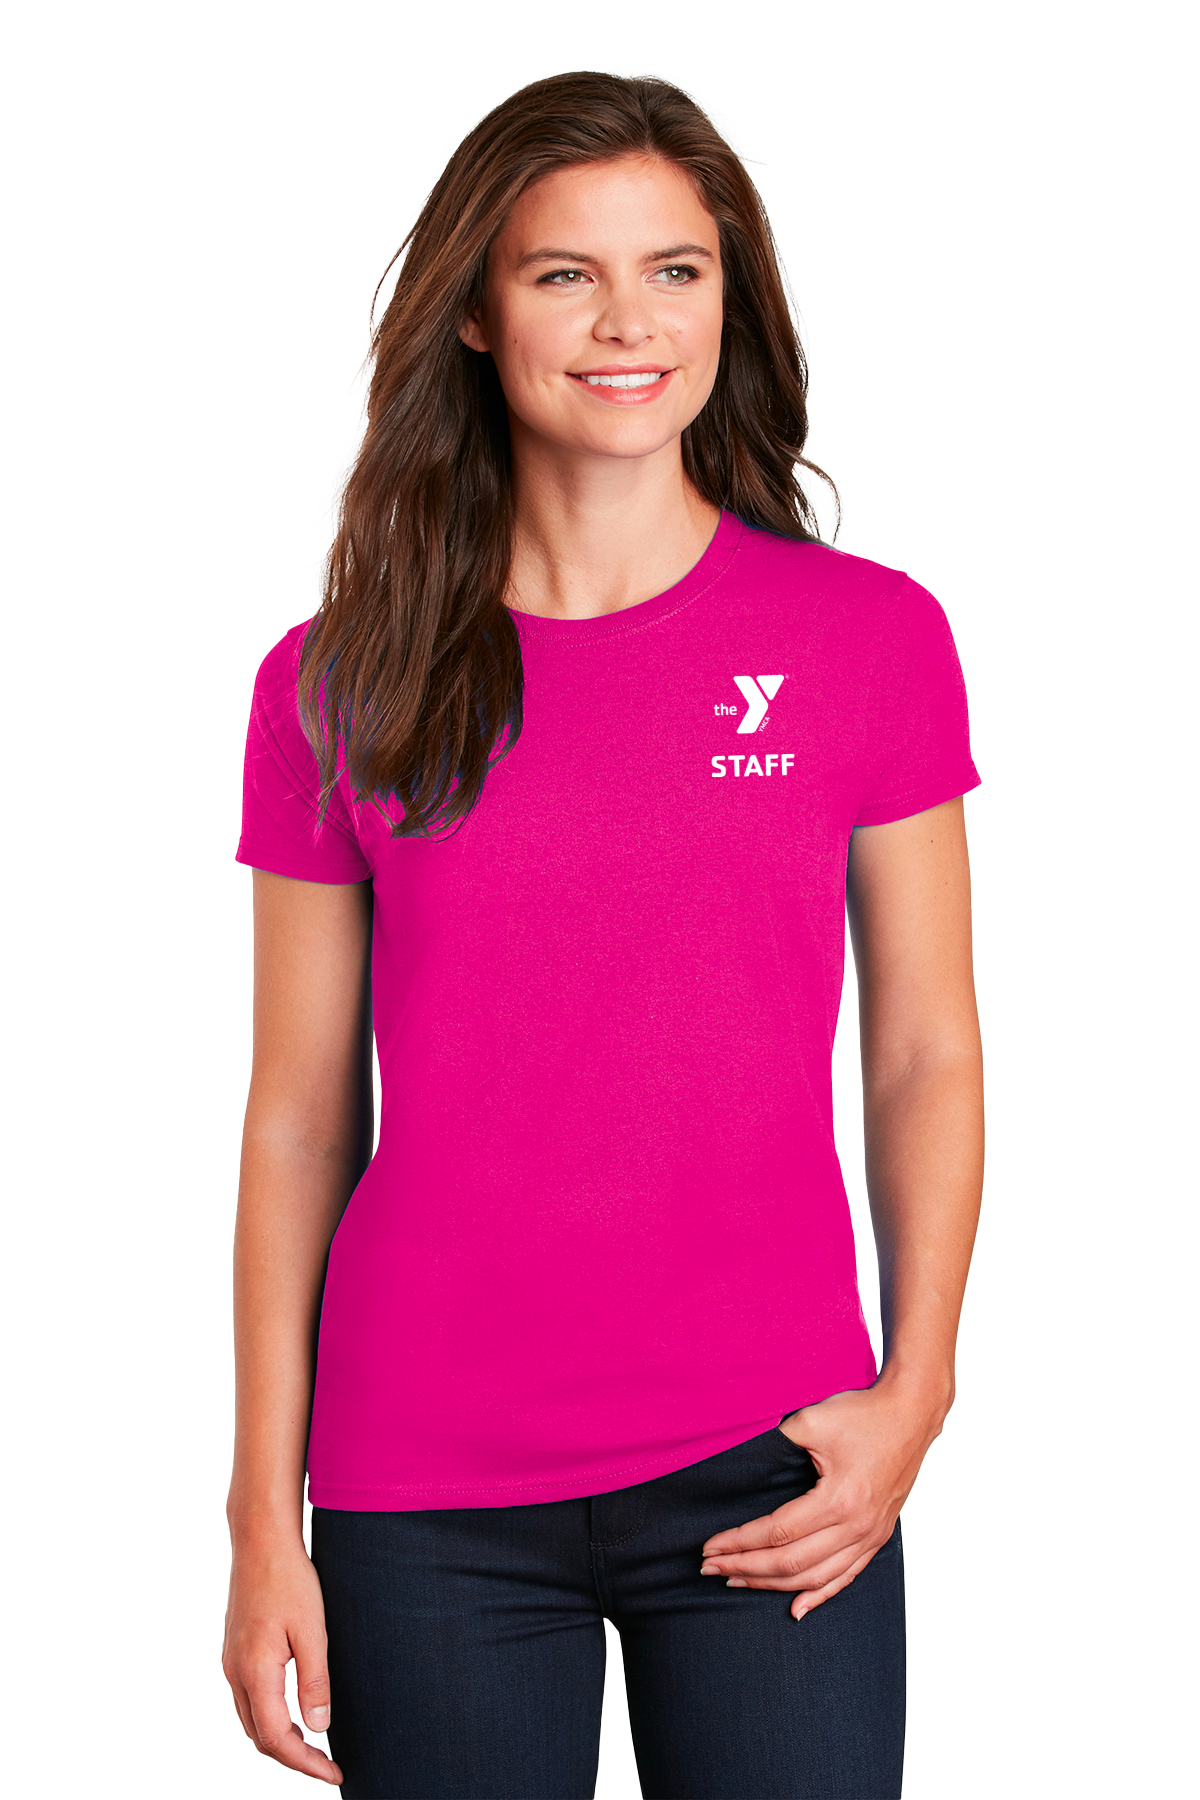 Ladies' Staff Apparel subcategory image